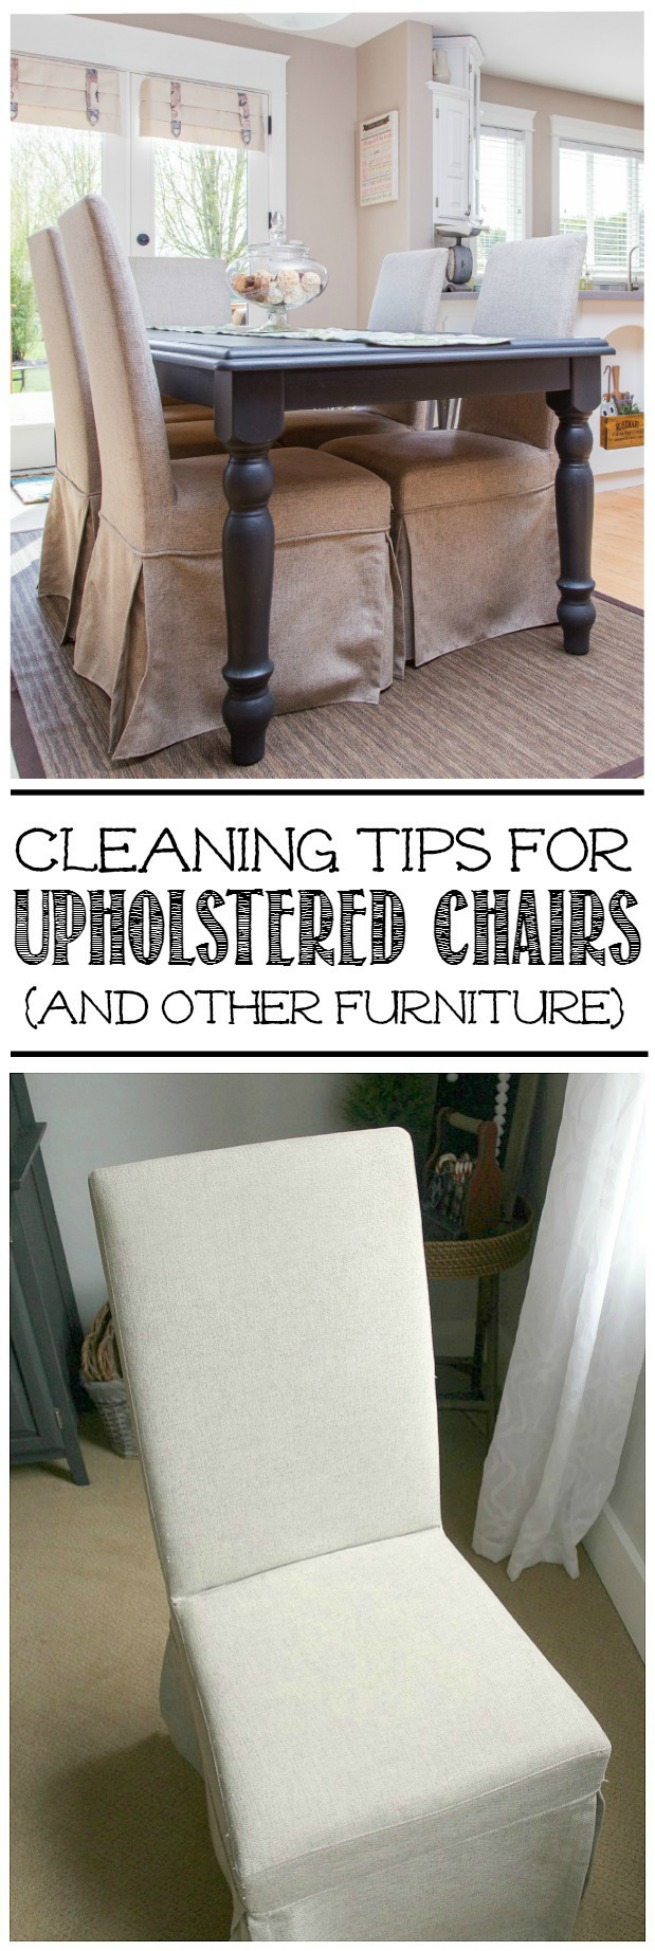 Tips and tricks for cleaning upholstered chairs and other furniture.